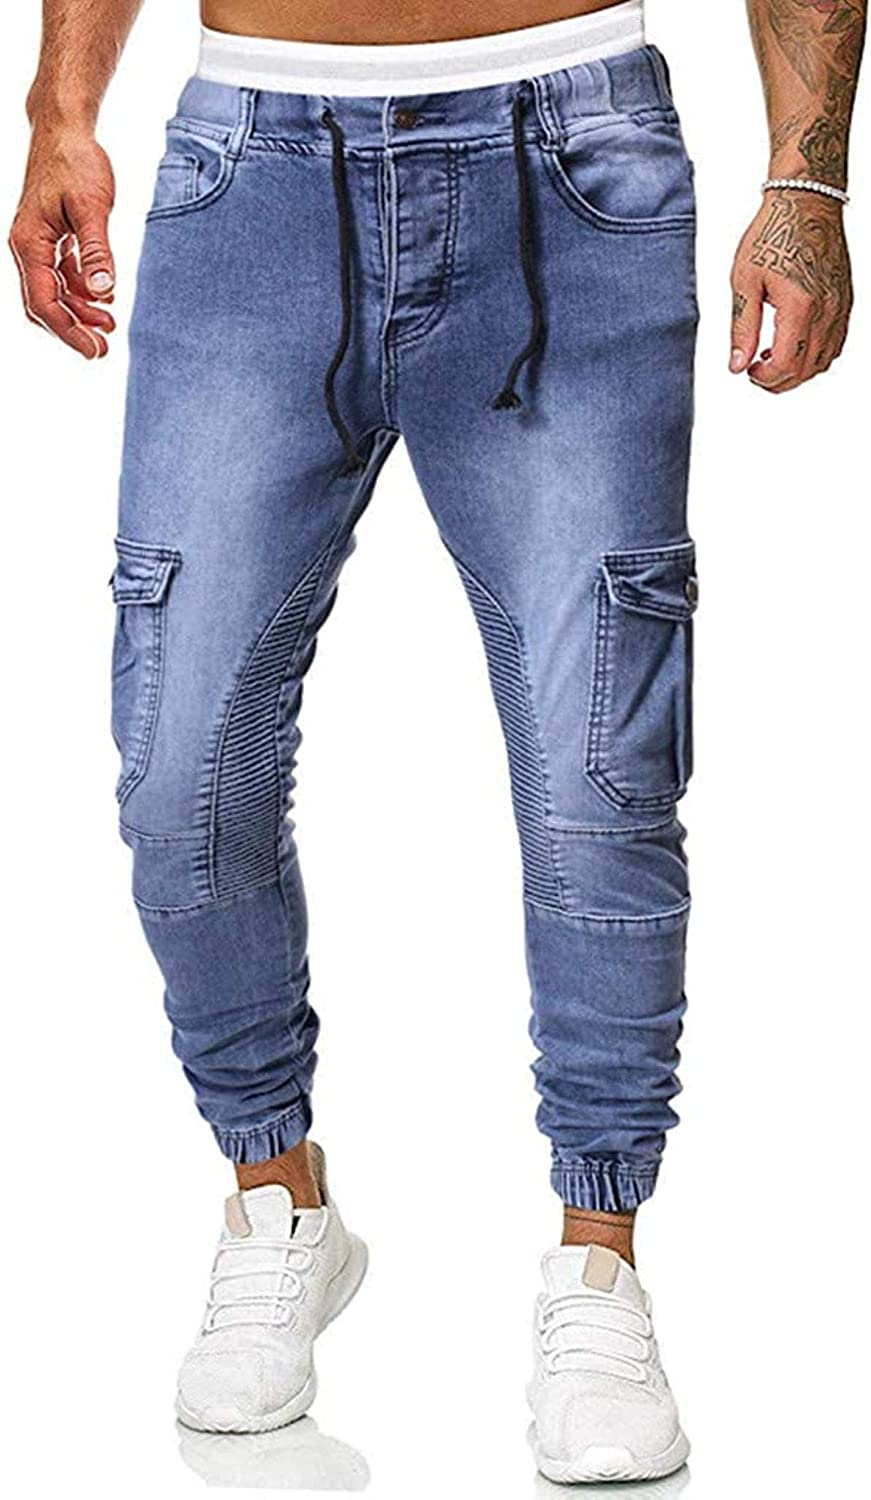 LLTT Men Skinny New Shipping Free Shipping Jeans Stretch Fit Slim Sale special price Biker Jean Washed